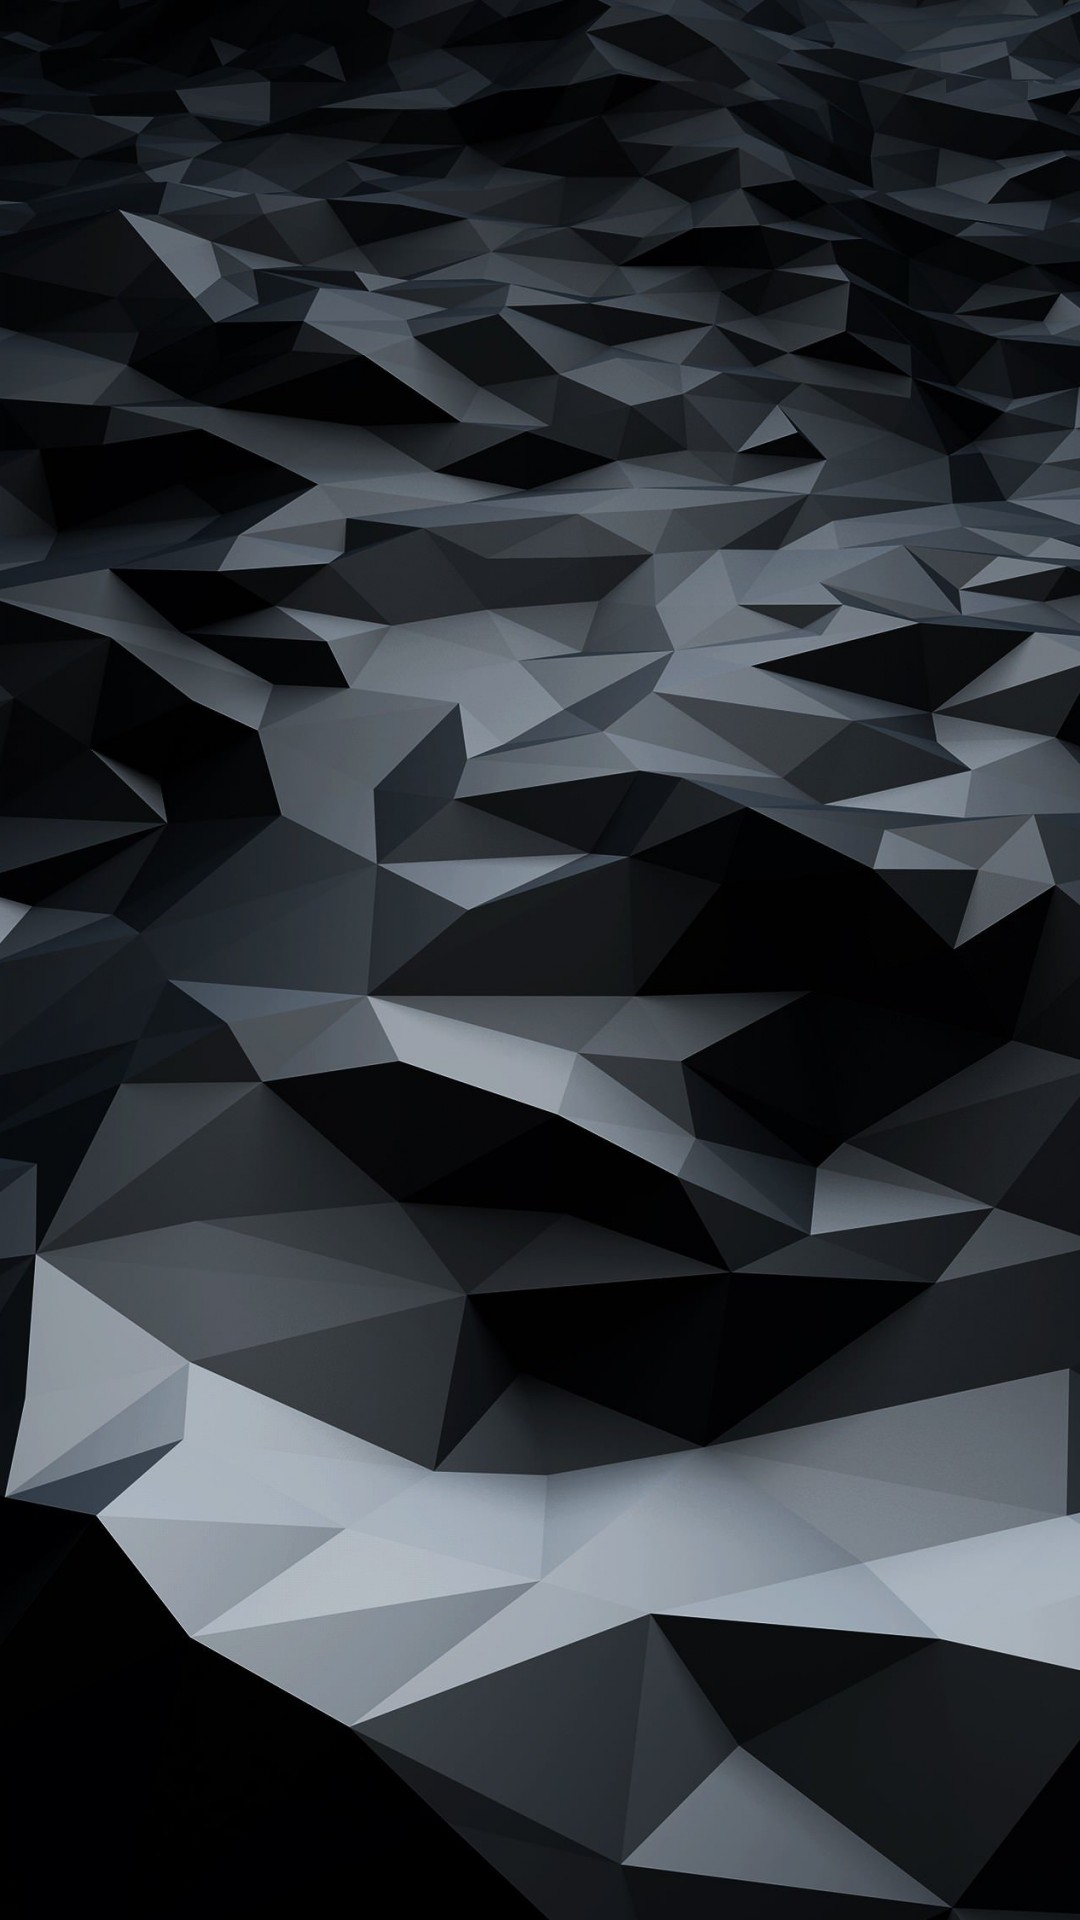 Abstract Black Low Poly Wallpaper for Google Nexus 5X